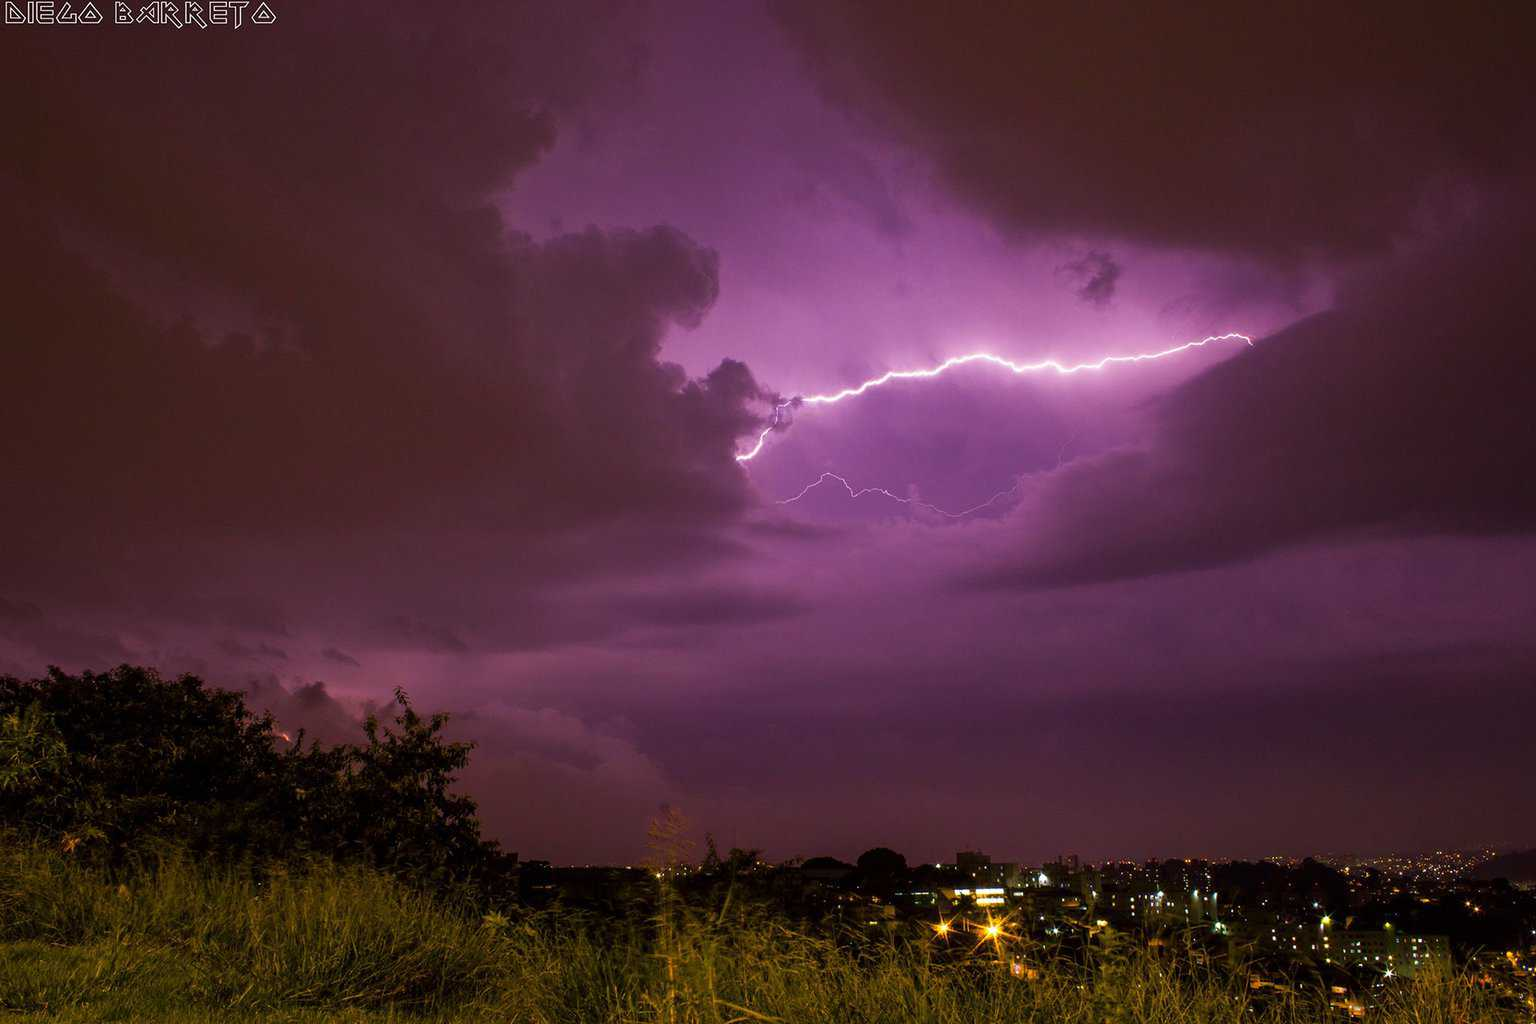 Shot this Inter-cloud lightning a few minutes ago during a thunderstorm. — in São Paulo, Brazil.